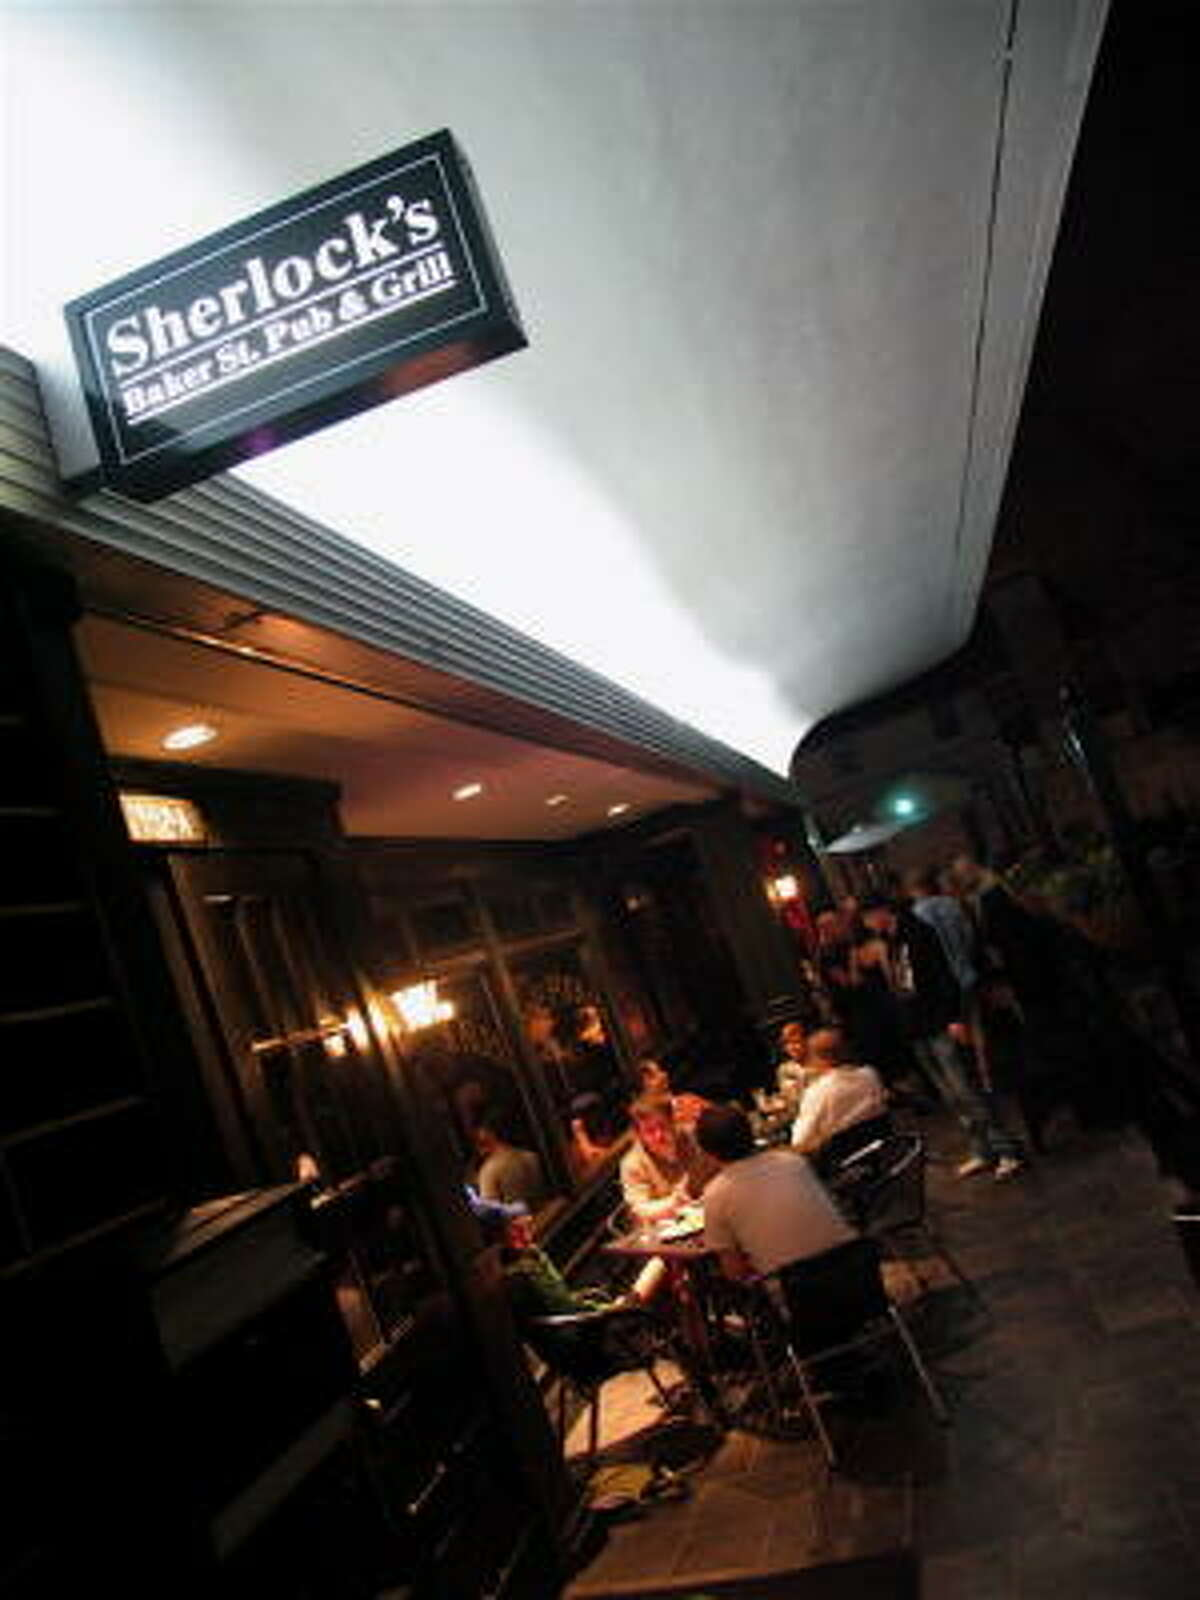 Sherlock's Pub River Oaks, 1997 W. Gray, has cheap martini night every Thursday.